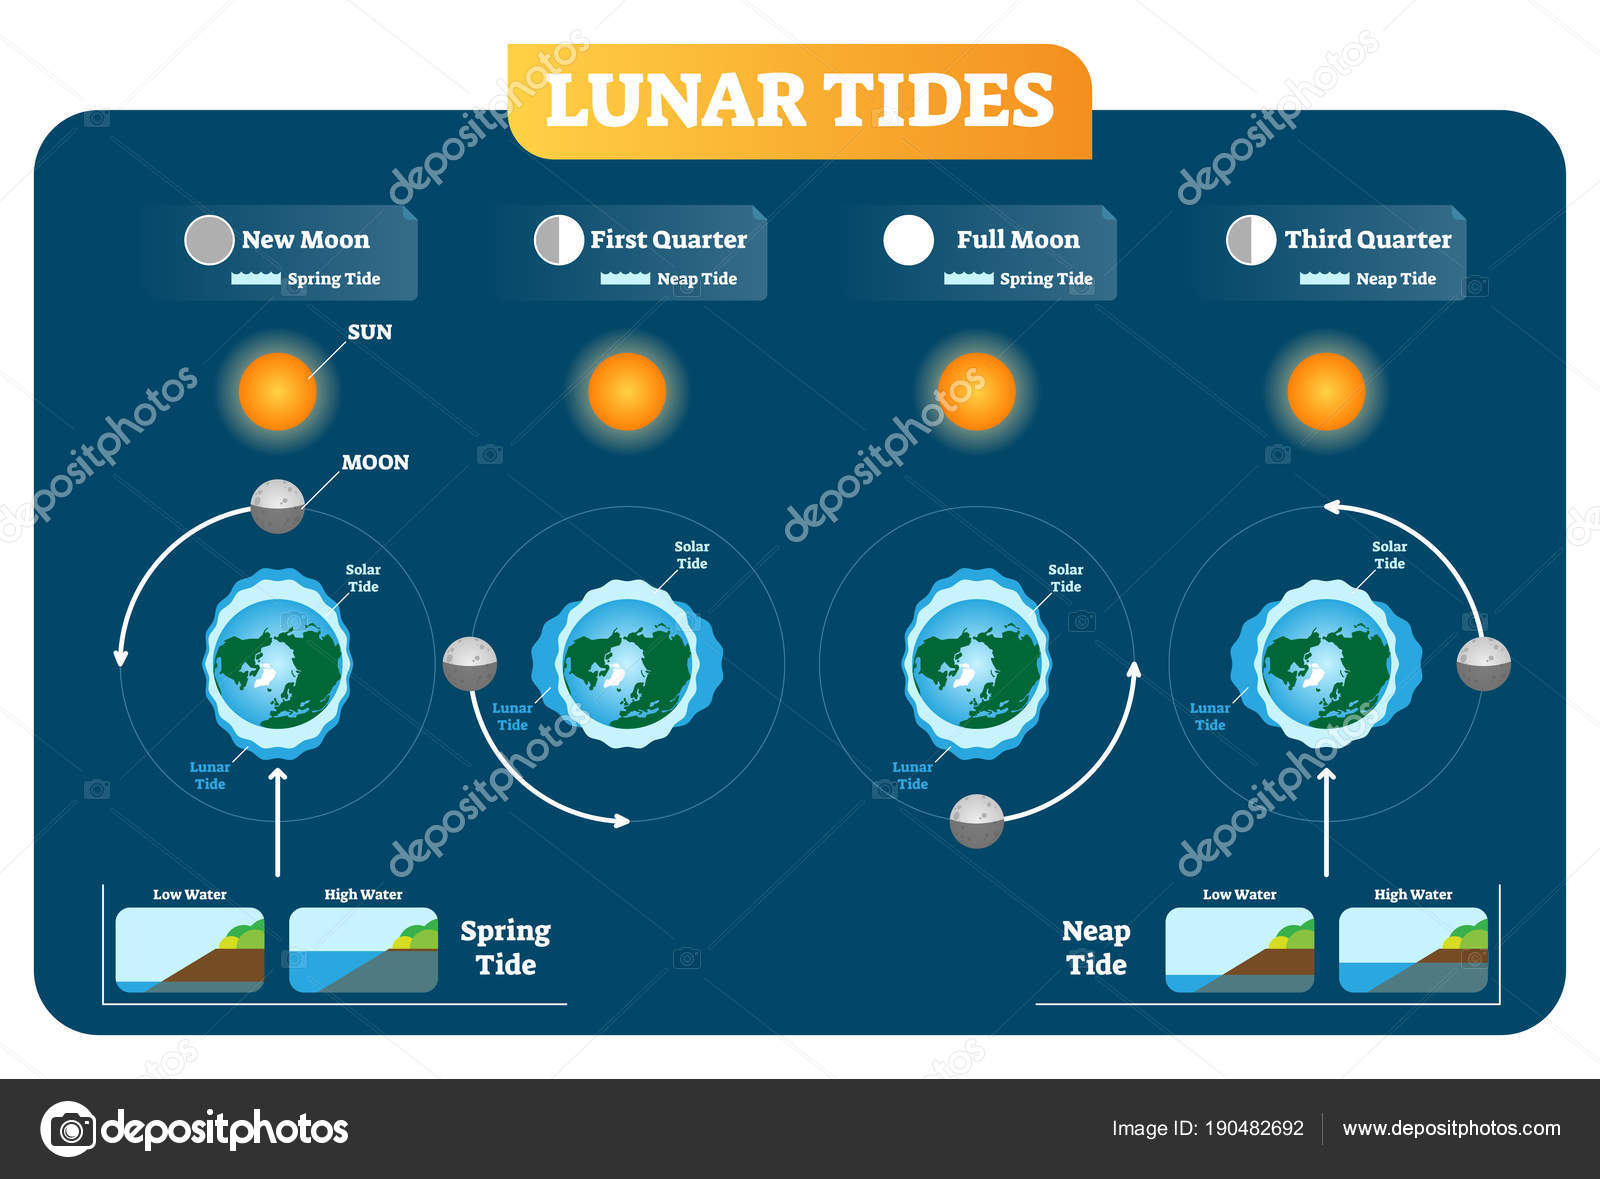 depositphotos_190482692 stock illustration lunar and solar tides vector lunar and solar tides vector illustration diagram poster spring and